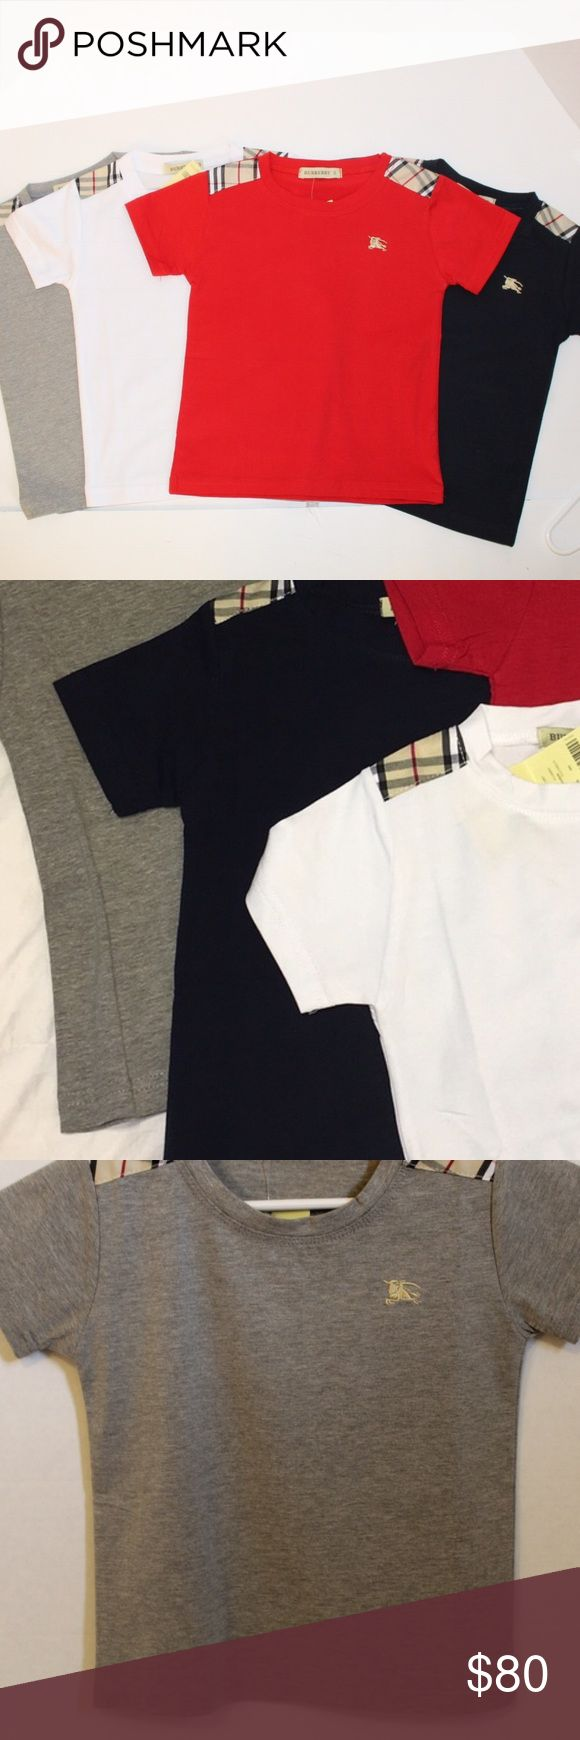 Set of 4 Boys Burberry T-Shirts 4 shirts are in this bundle.  If you have questions about sizing please just ask!  NEW WITH TAGS 100% Cotton   Sizes available: 2T, 3T, 4T, 5T, 6 & 7 Years   I SHIP SAME DAY Burberry Shirts & Tops